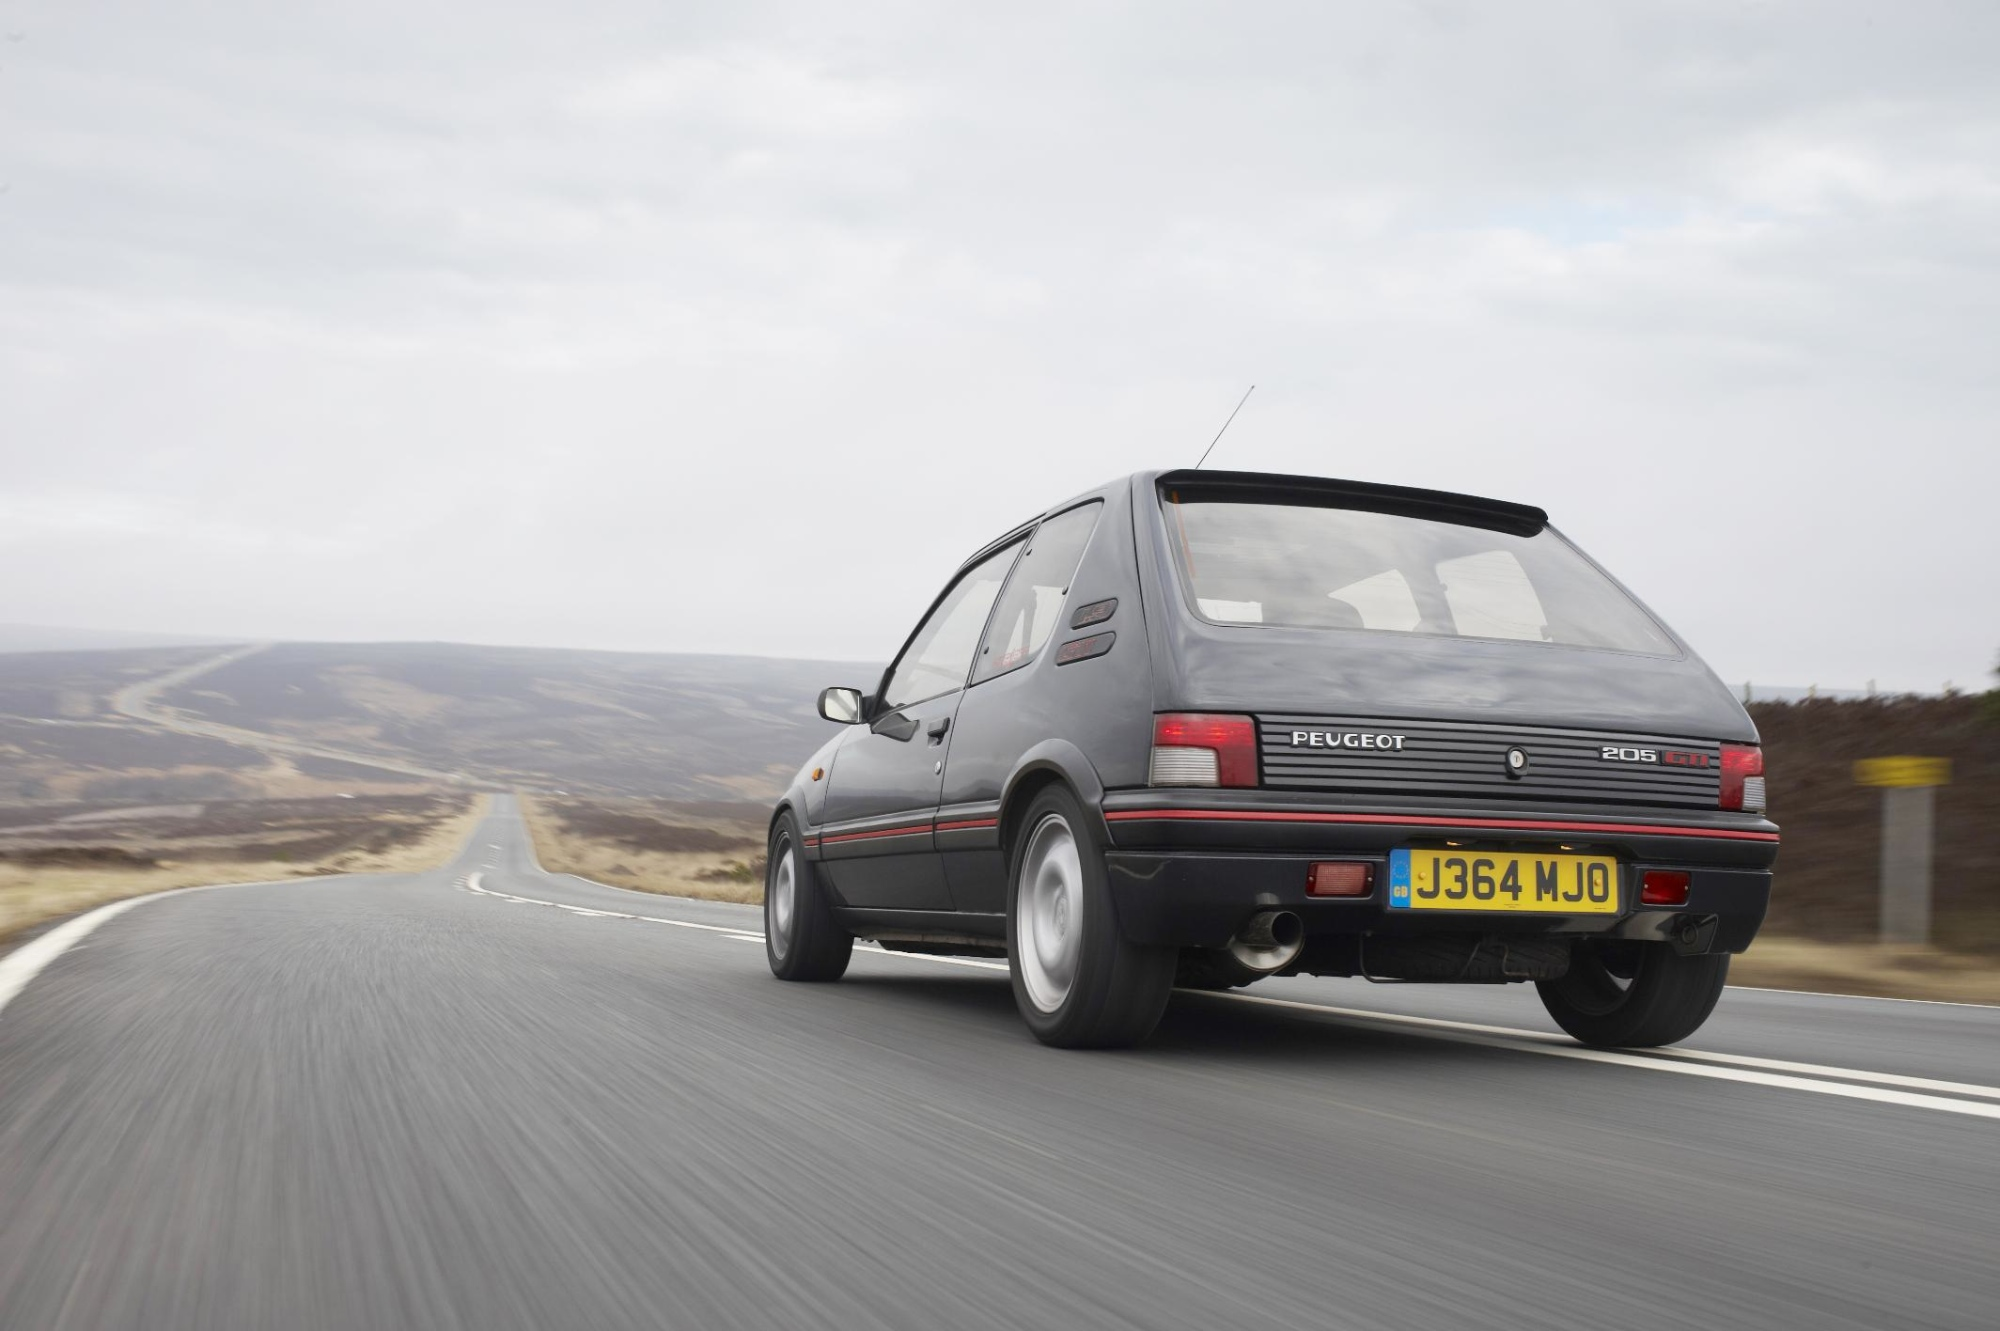 peugeot 205 gti gets modern tuning conversion autoevolution. Black Bedroom Furniture Sets. Home Design Ideas